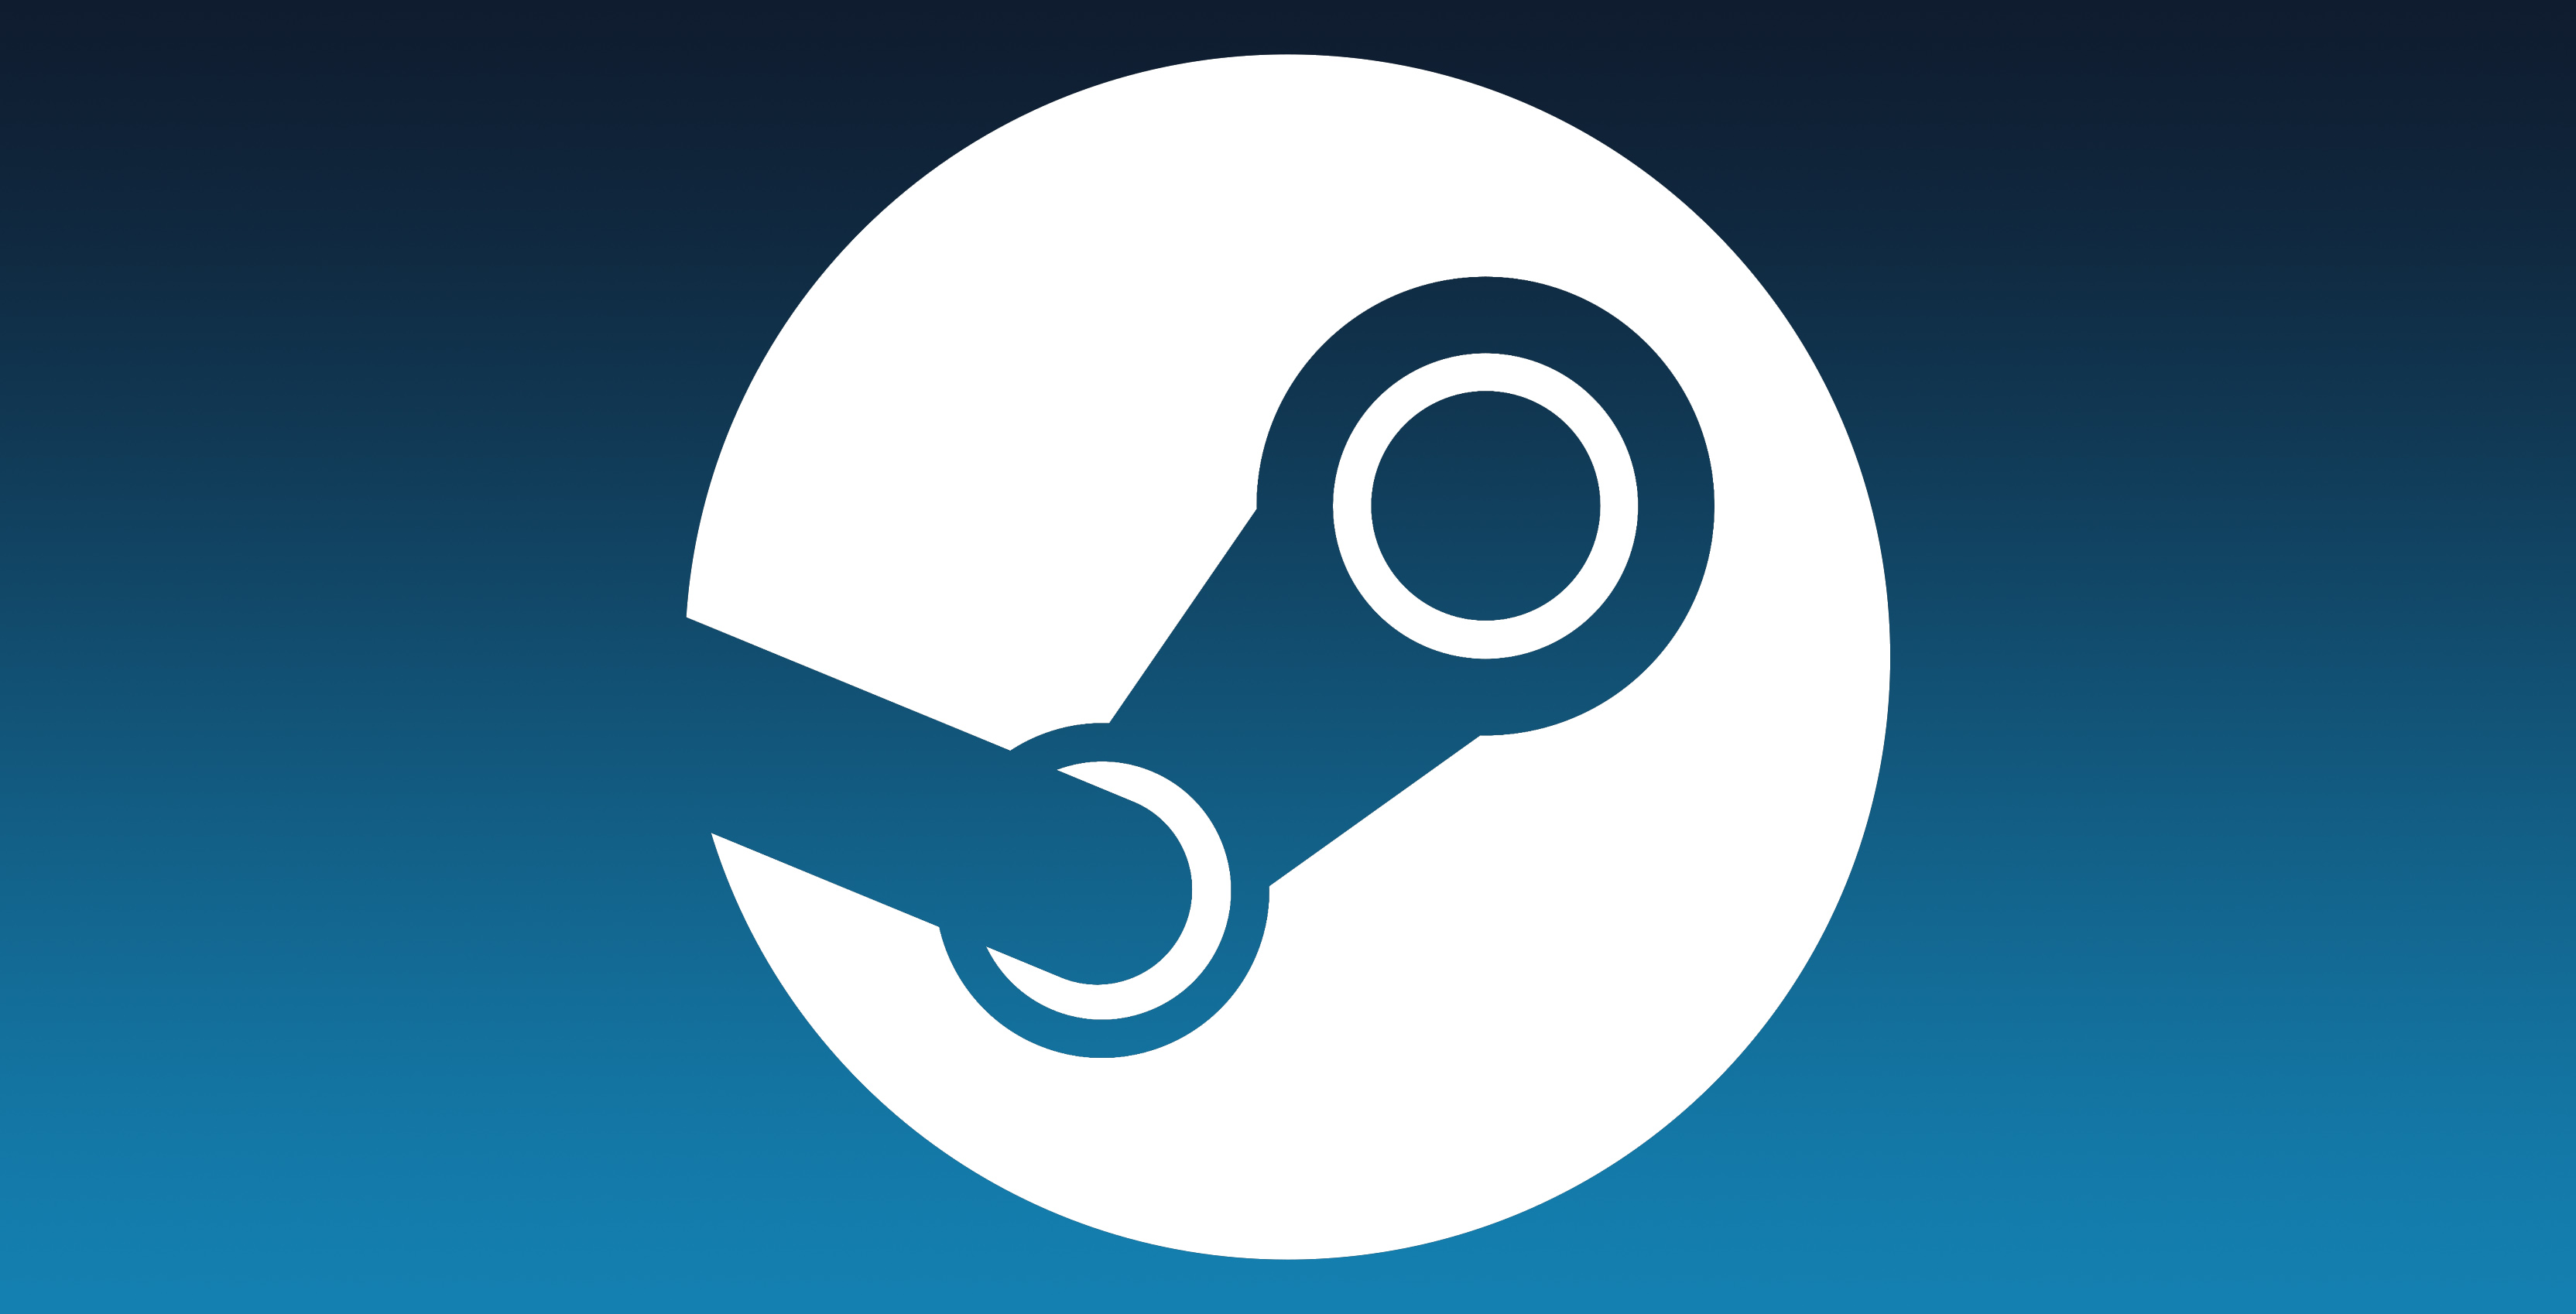 Steam Link iOS app update introduces button remapping